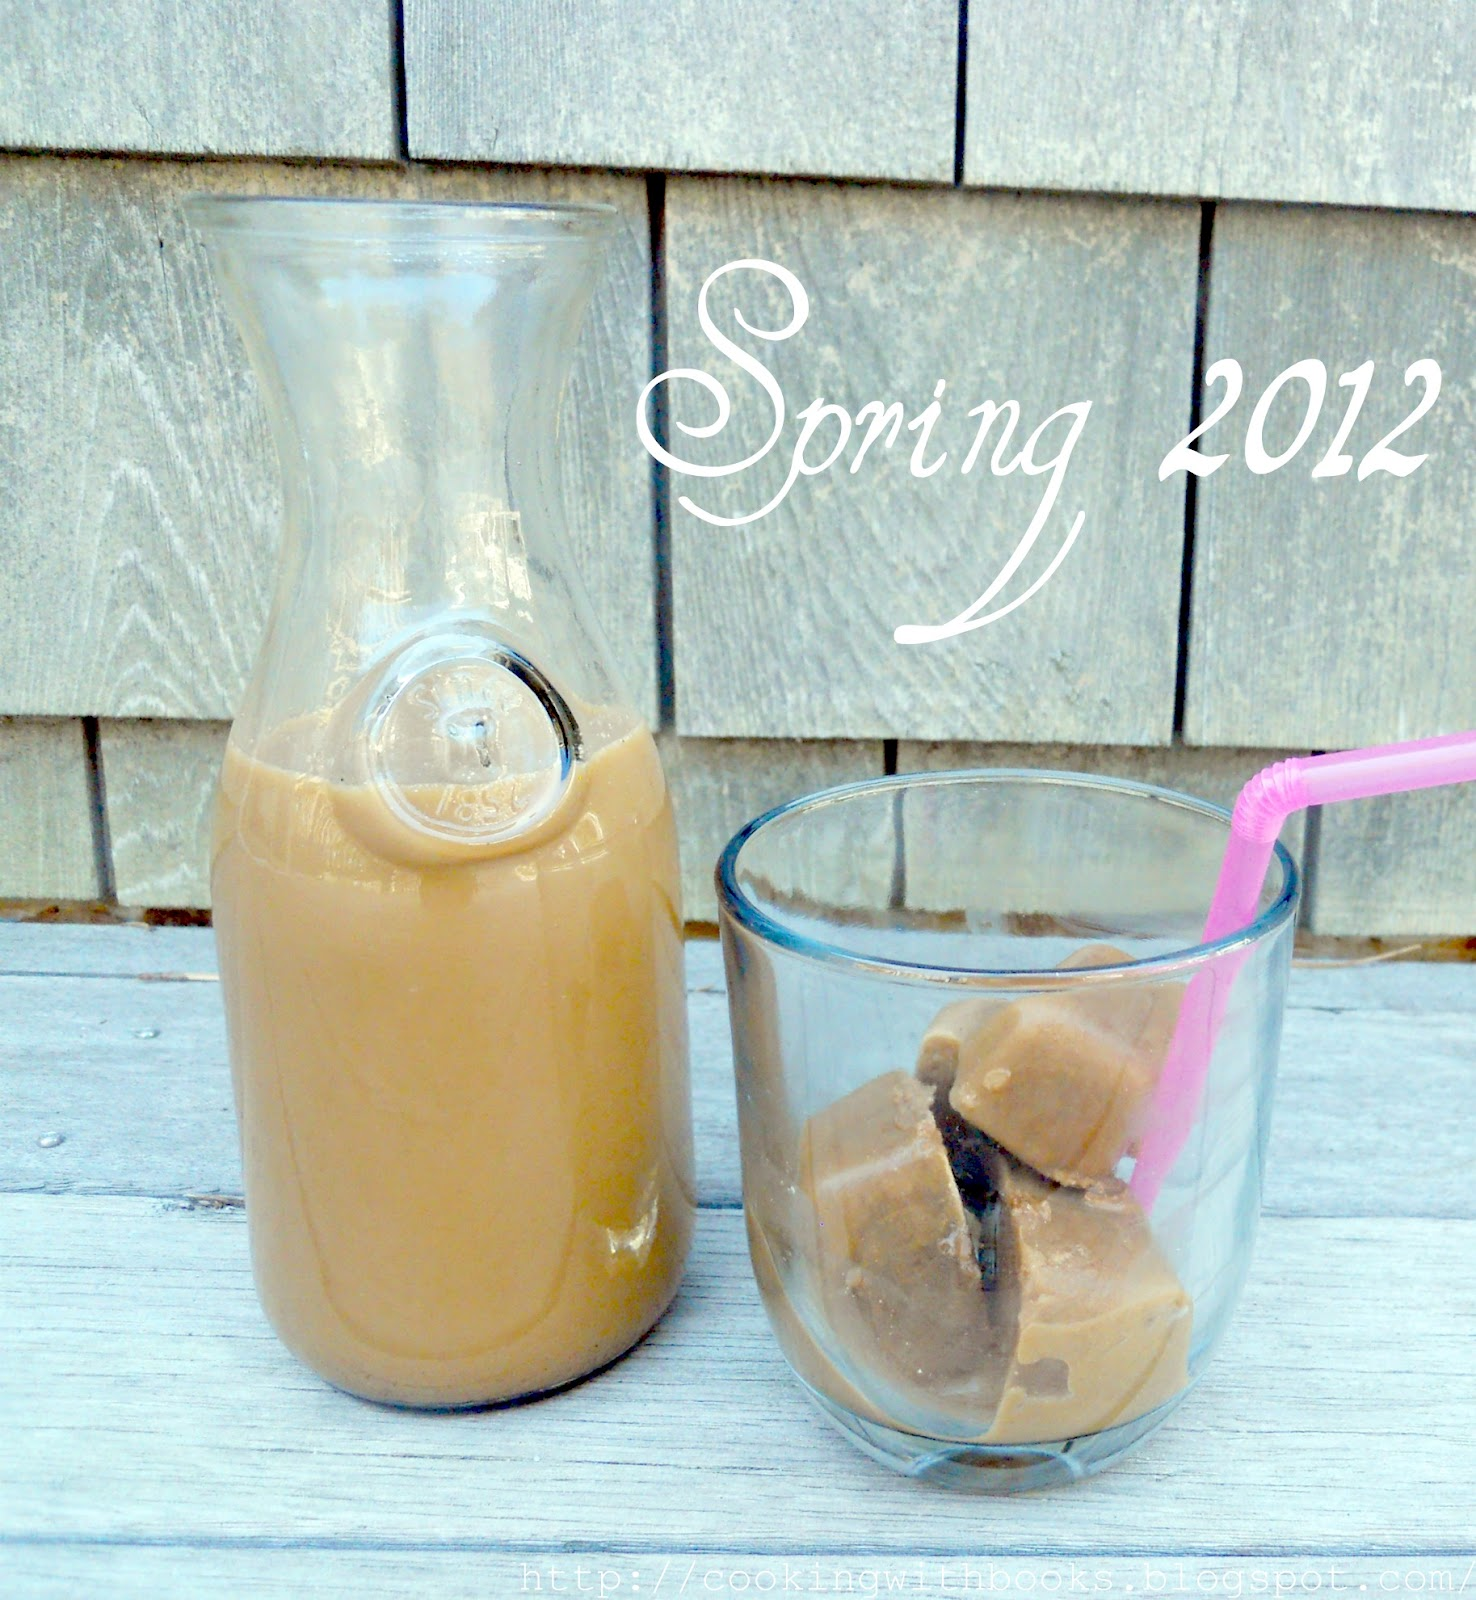 Thai Iced Coffee - Cooking with Books